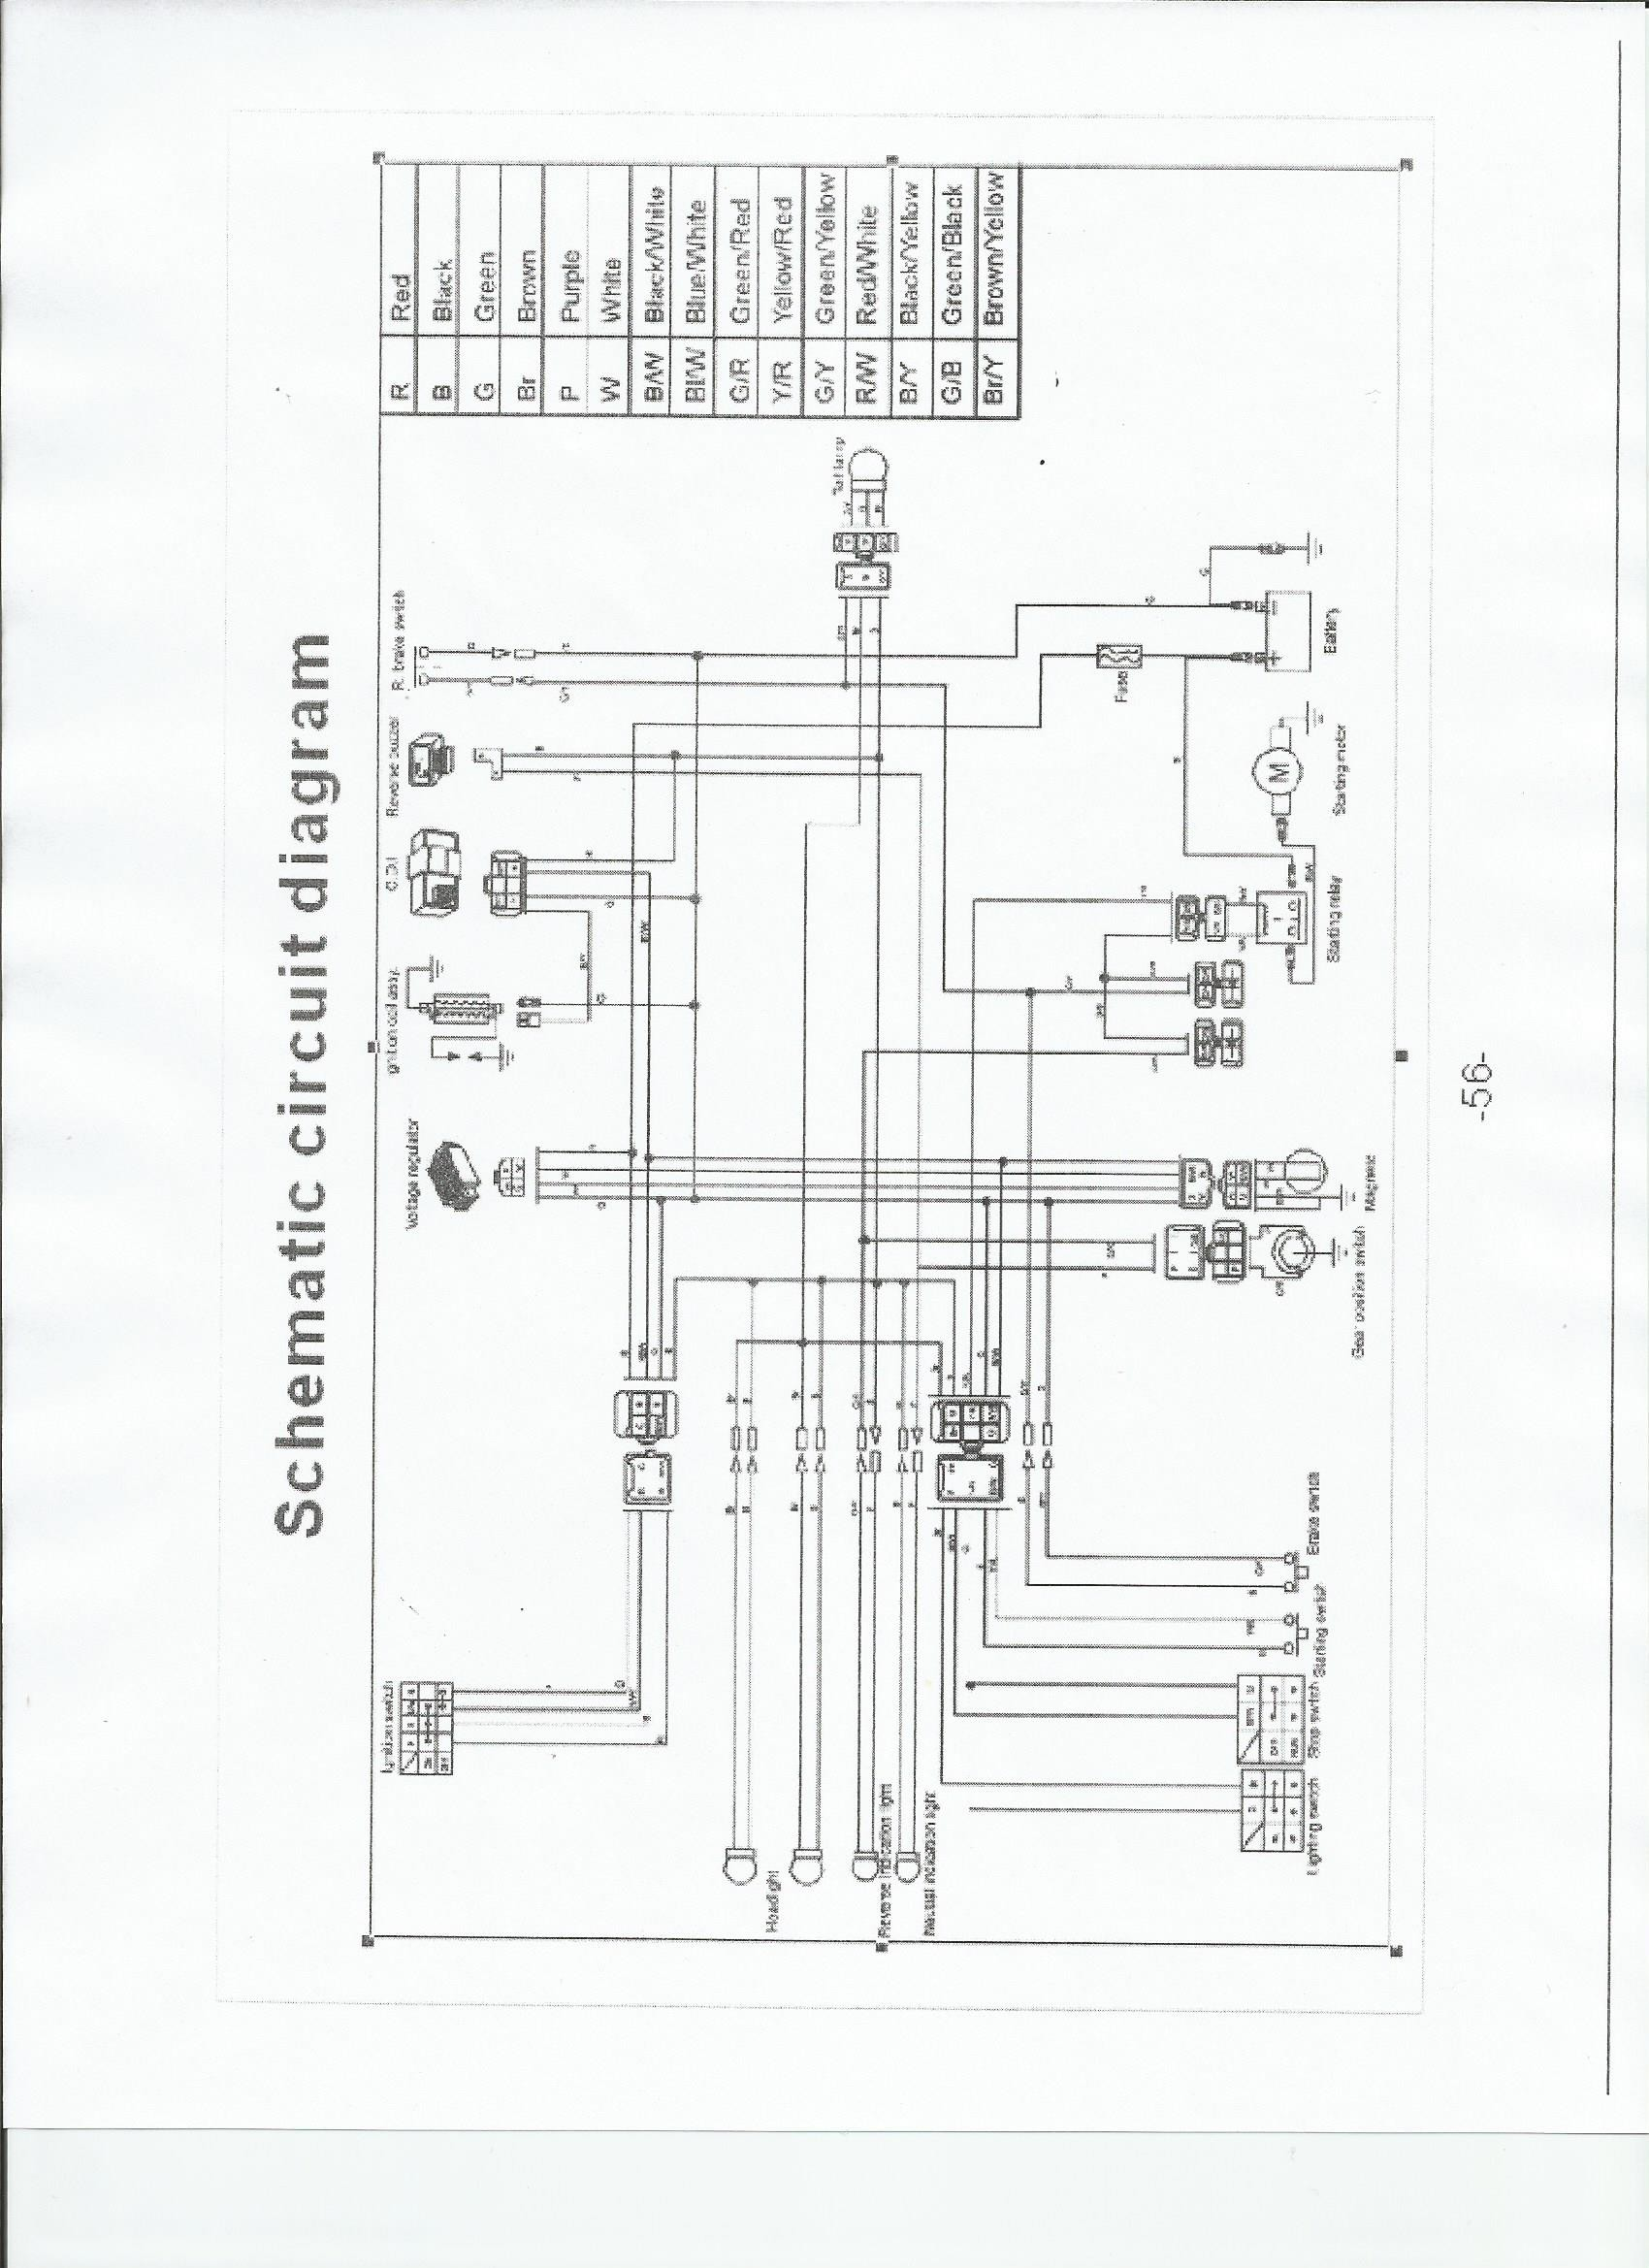 Wiring Manual PDF: 110 Schematic Wiring